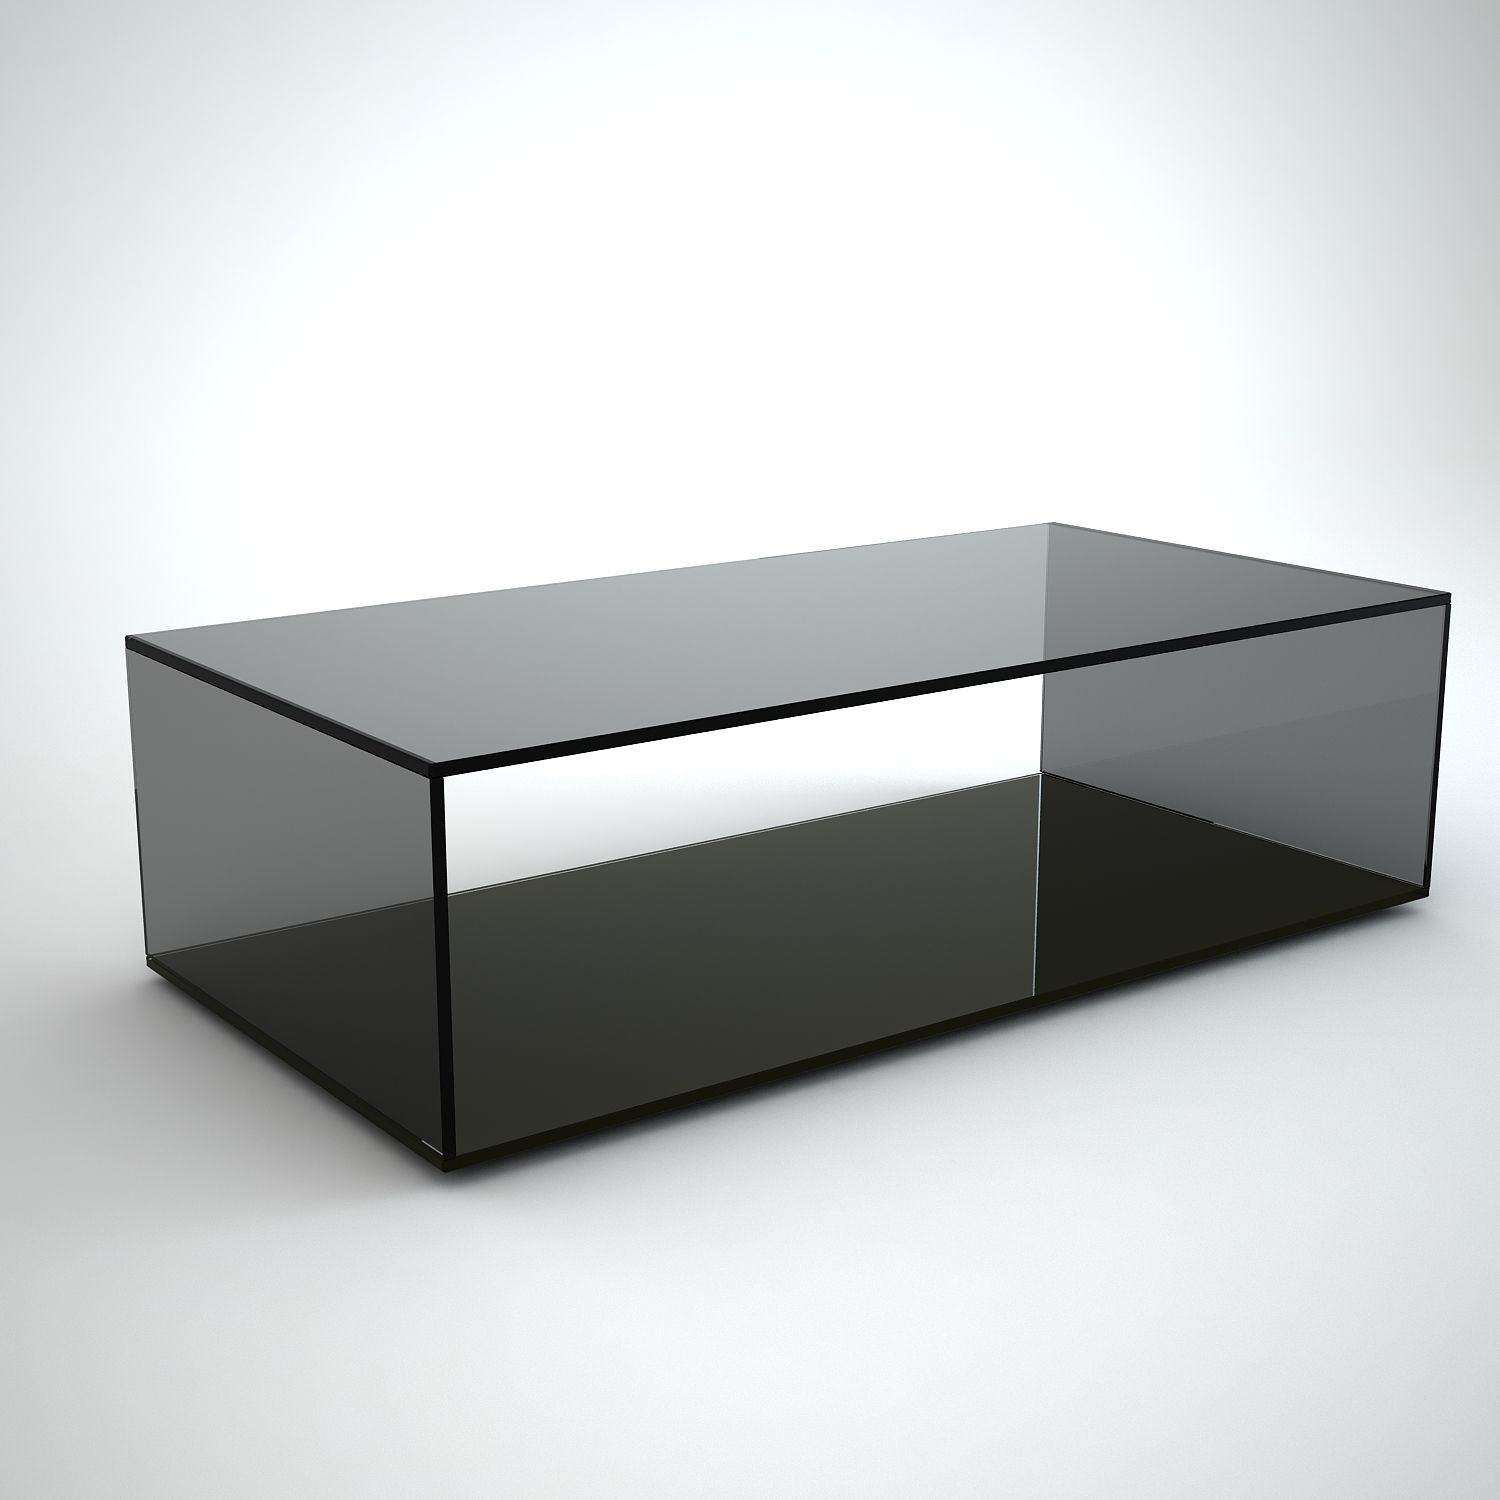 Quebec Rectangular Grey Tint Gl Coffee Table By Klarity